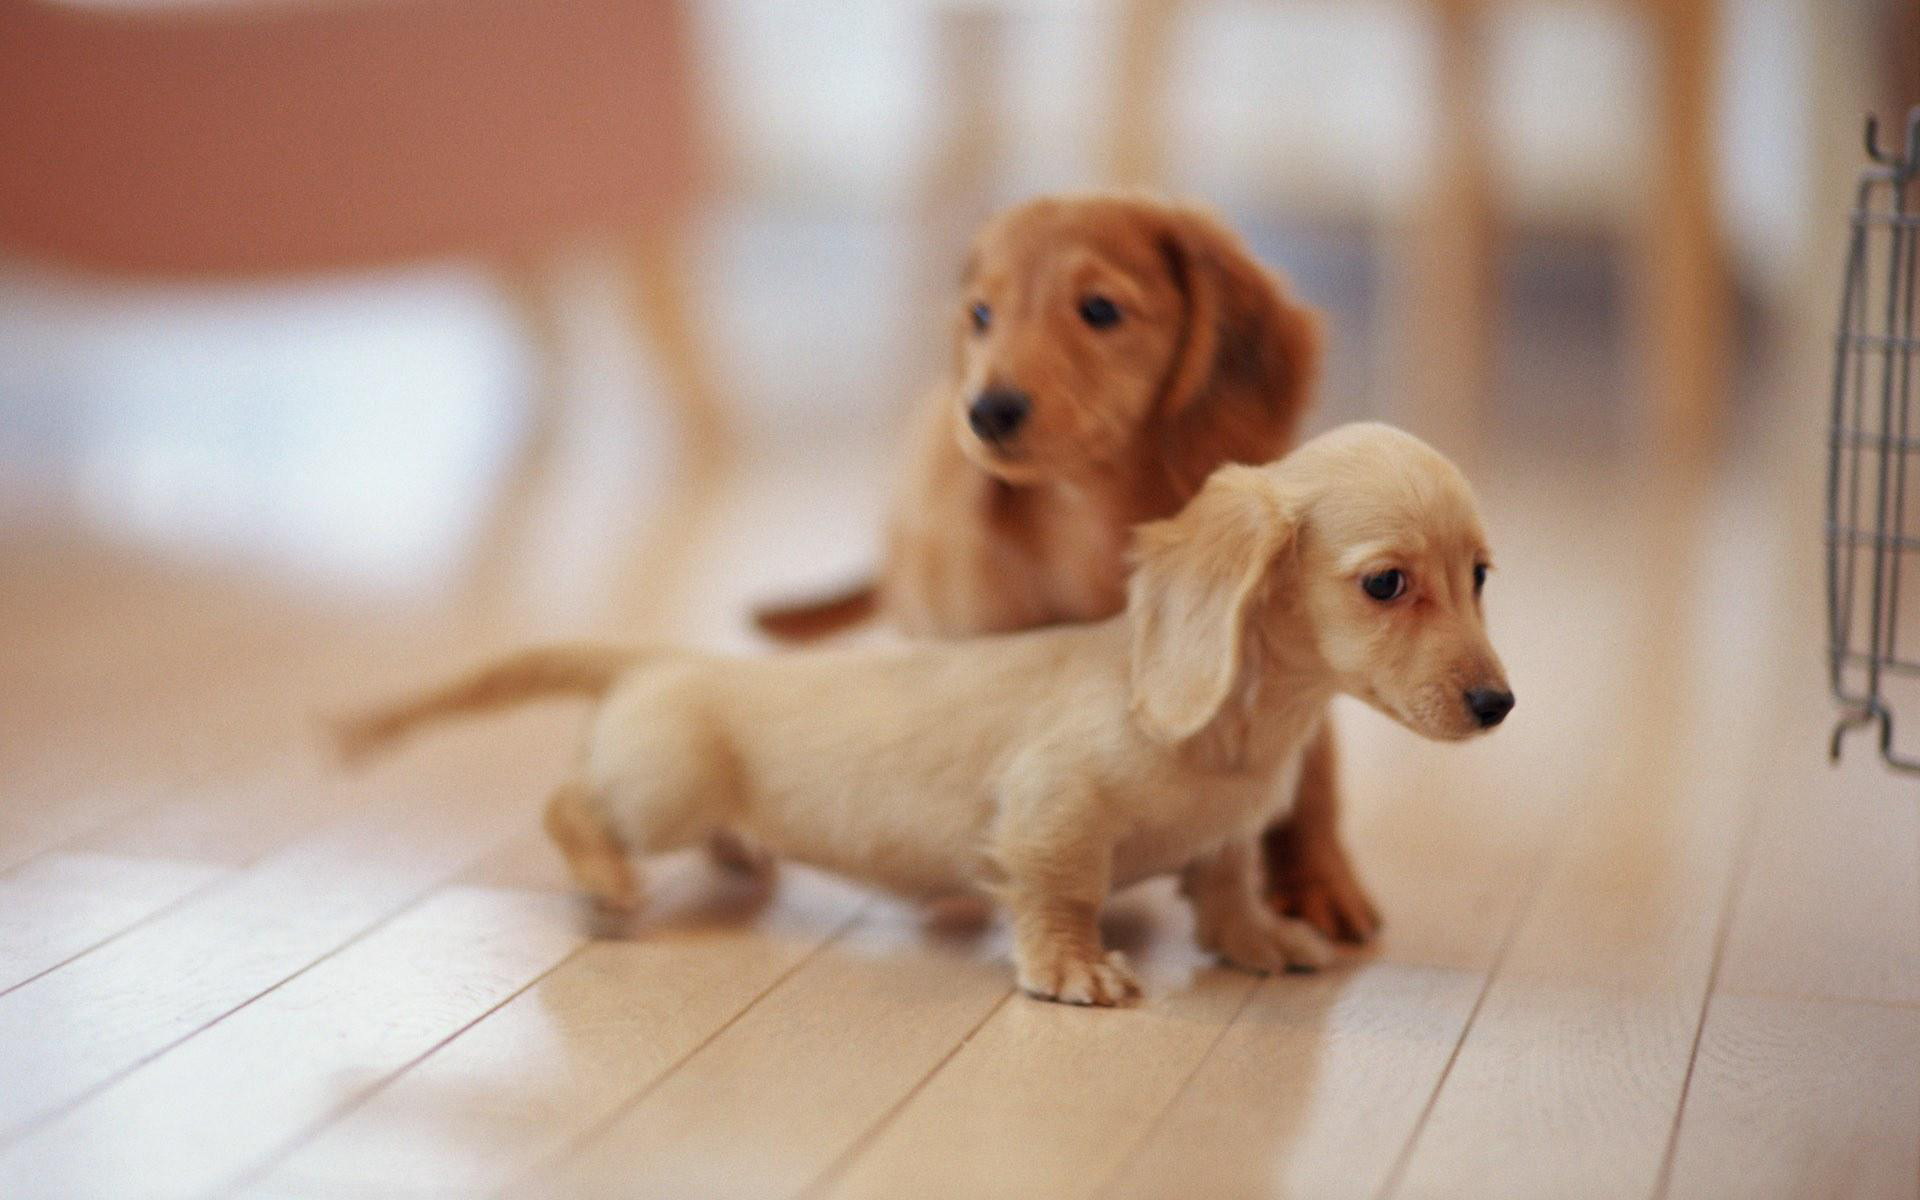 Cute Puppies and Dogs Wallpaper × Wallpapers Dogs Puppies   HD Wallpapers    Pinterest   Dog wallpaper, Wallpaper and Wallpapers android